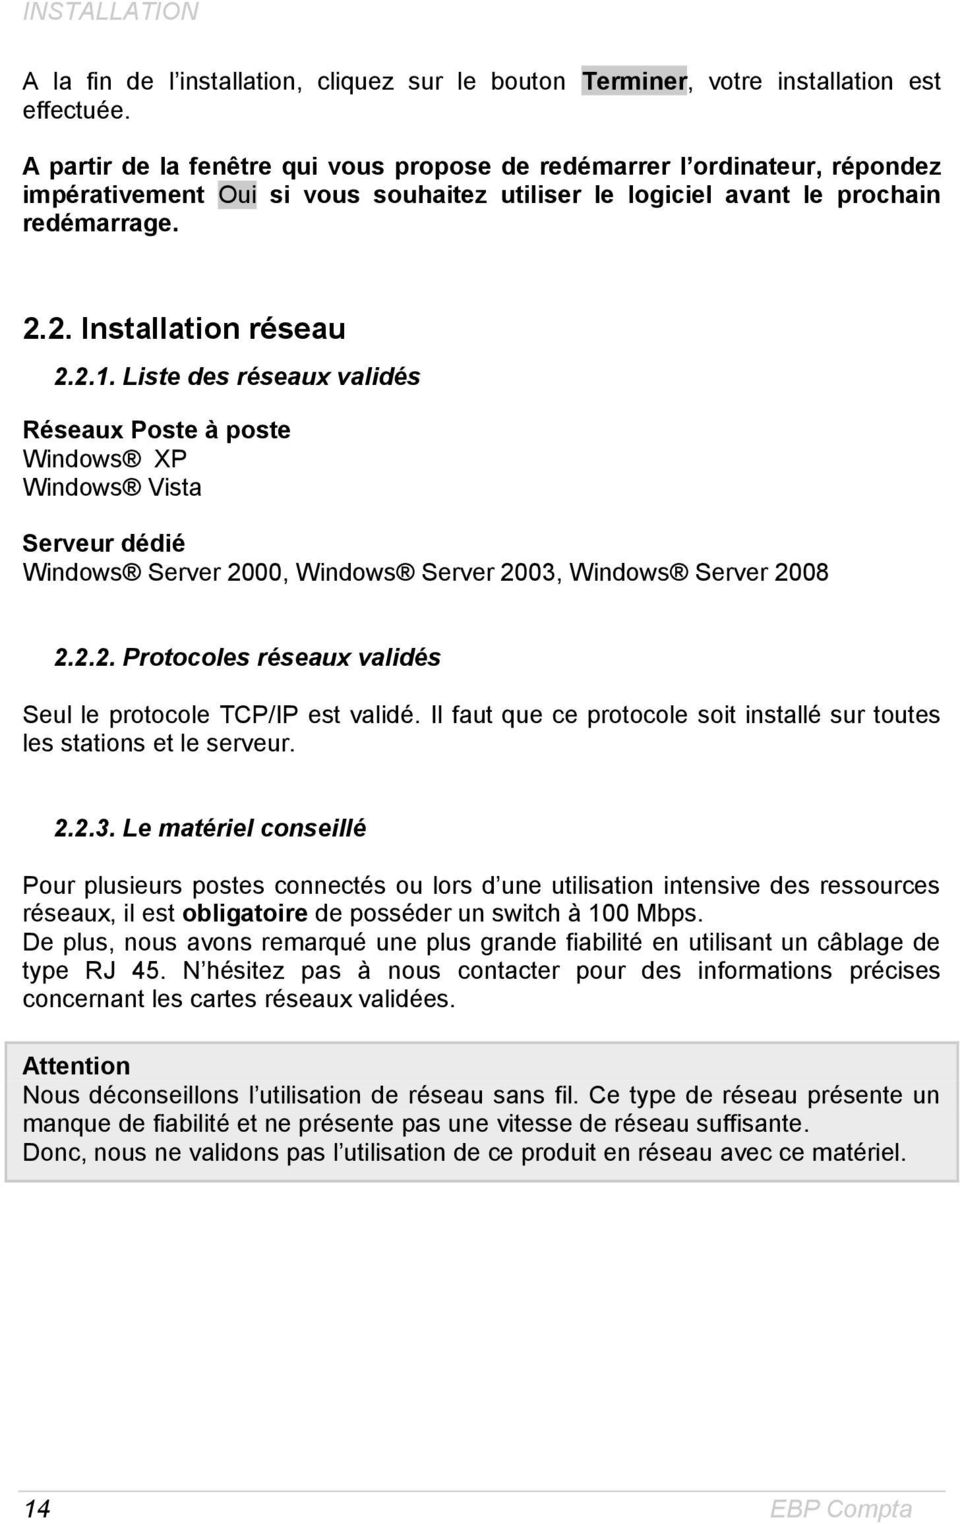 Liste des réseaux validés Réseaux Poste à poste Windows XP Windows Vista Serveur dédié Windows Server 2000, Windows Server 2003, Windows Server 2008 2.2.2. Protocoles réseaux validés Seul le protocole TCP/IP est validé.